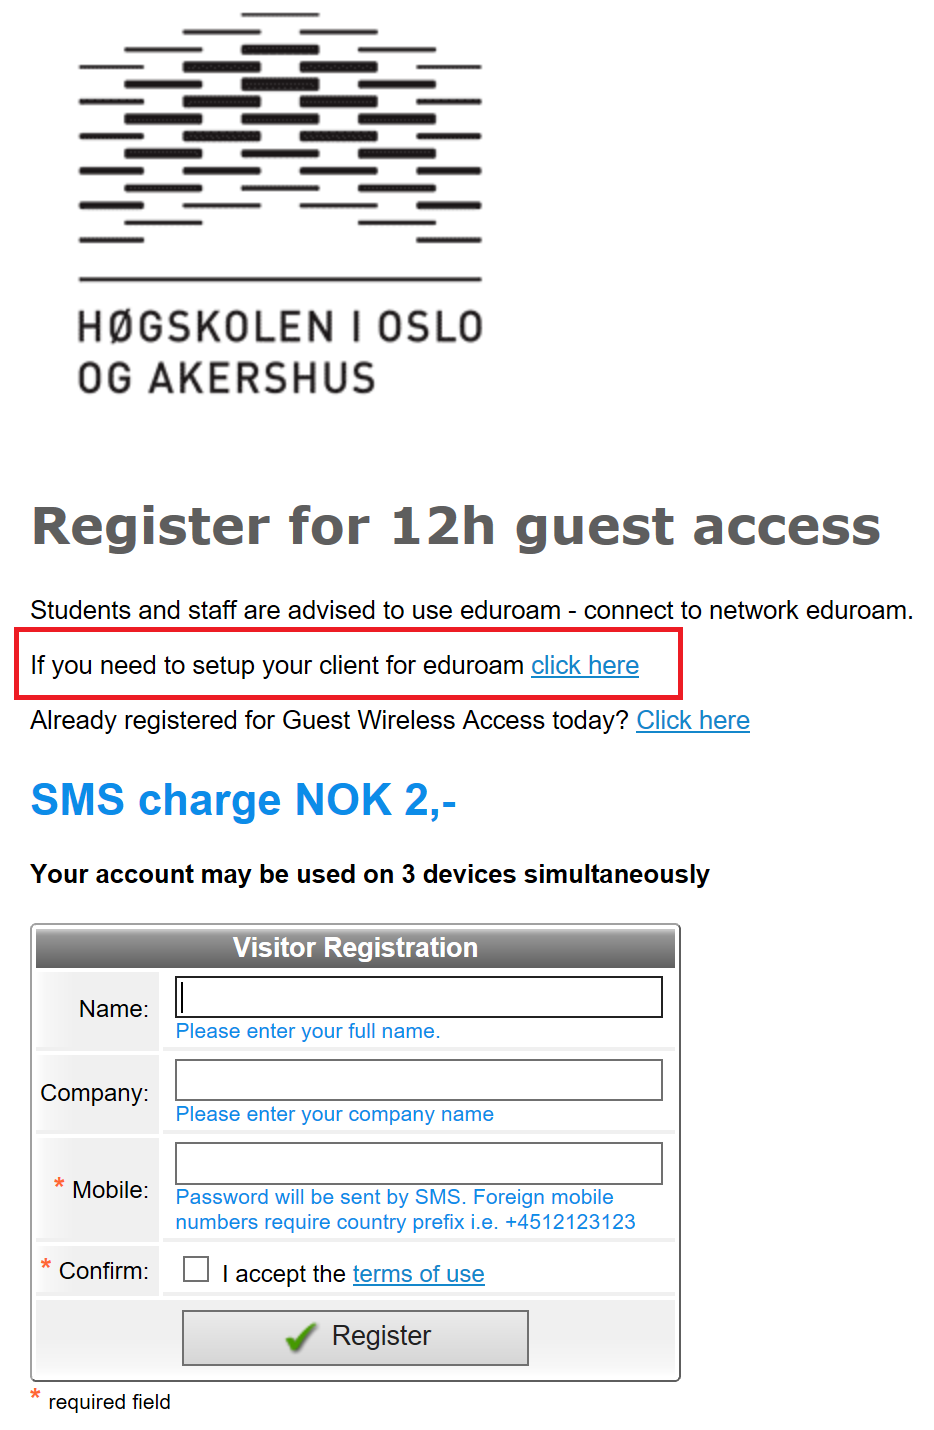 Skjermbilde: Velg If you need to setup... for å laste ned eduroam-profil med sertifikat.